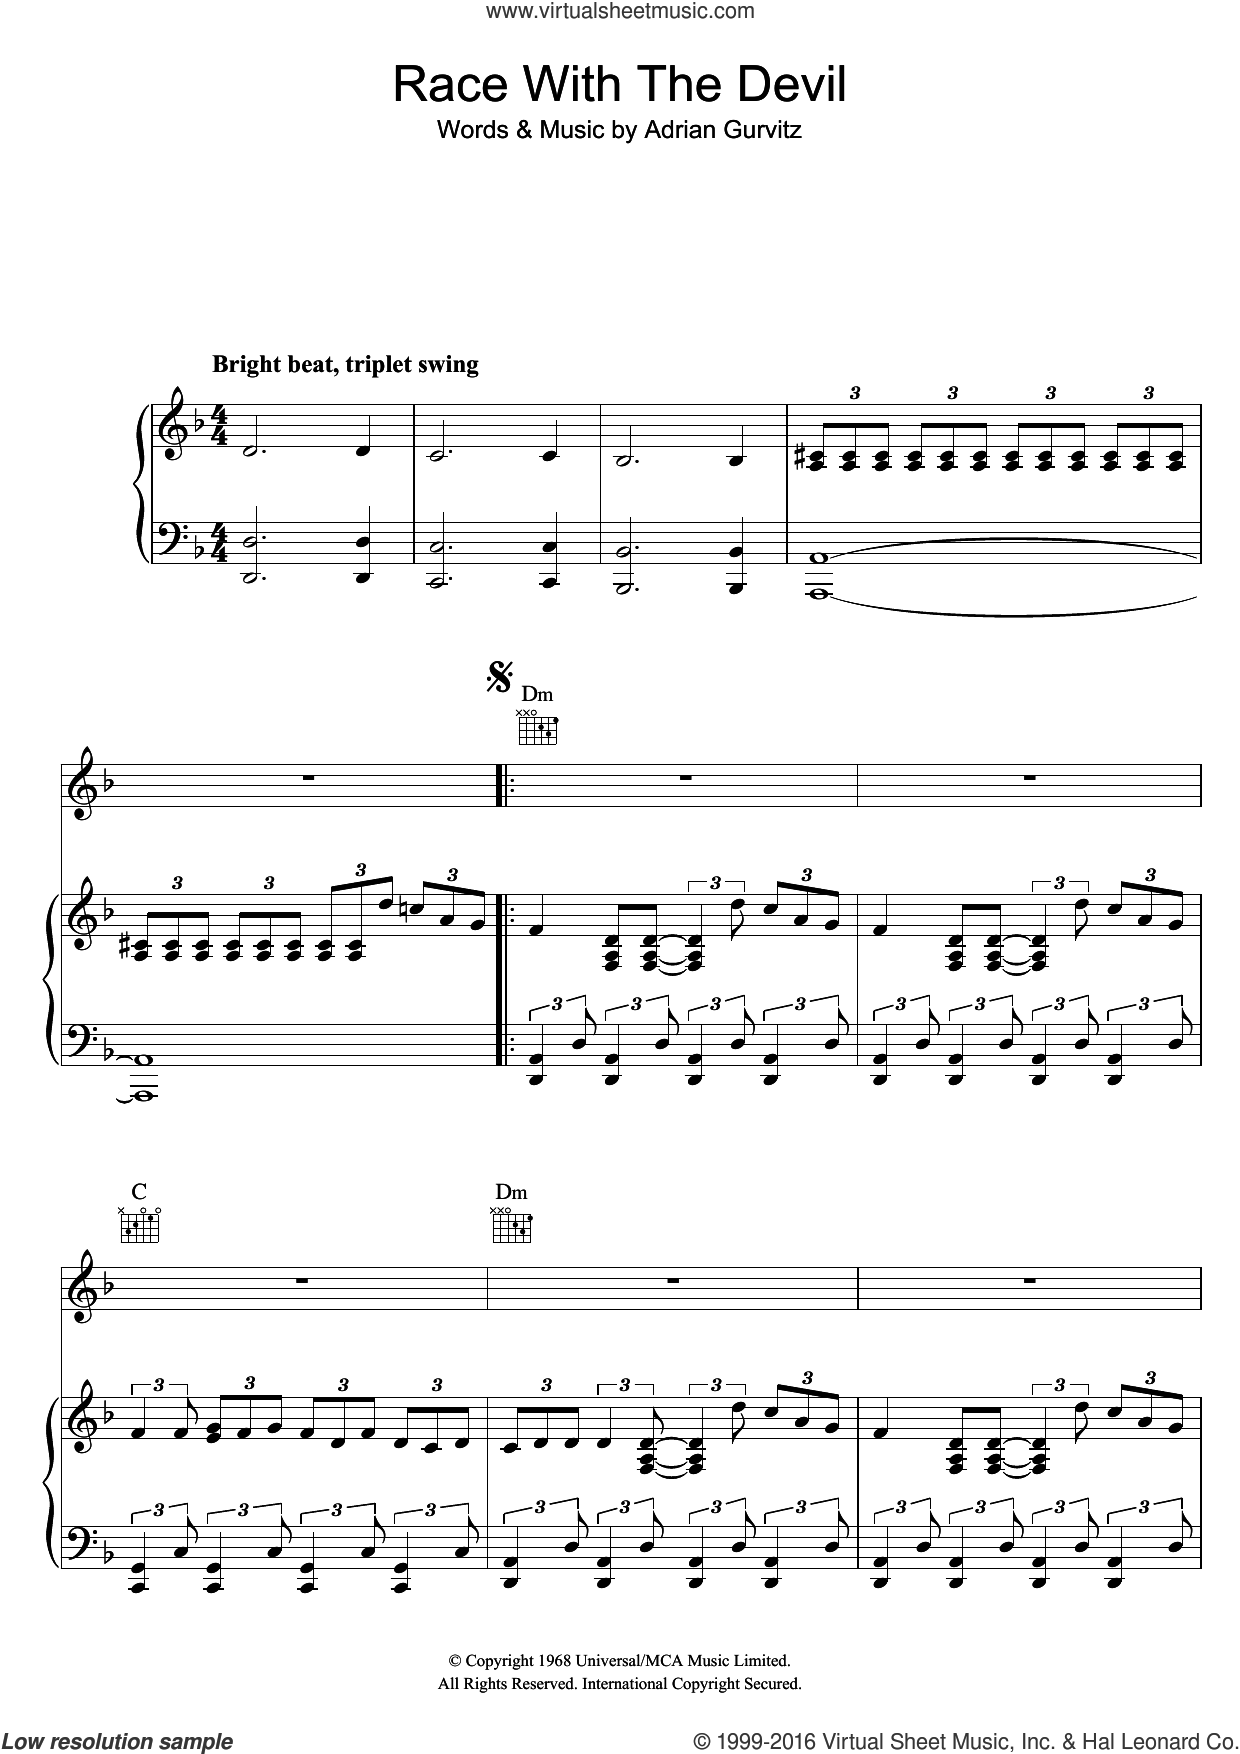 Race With The Devil sheet music for voice, piano or guitar by Adrian Gurvitz. Score Image Preview.